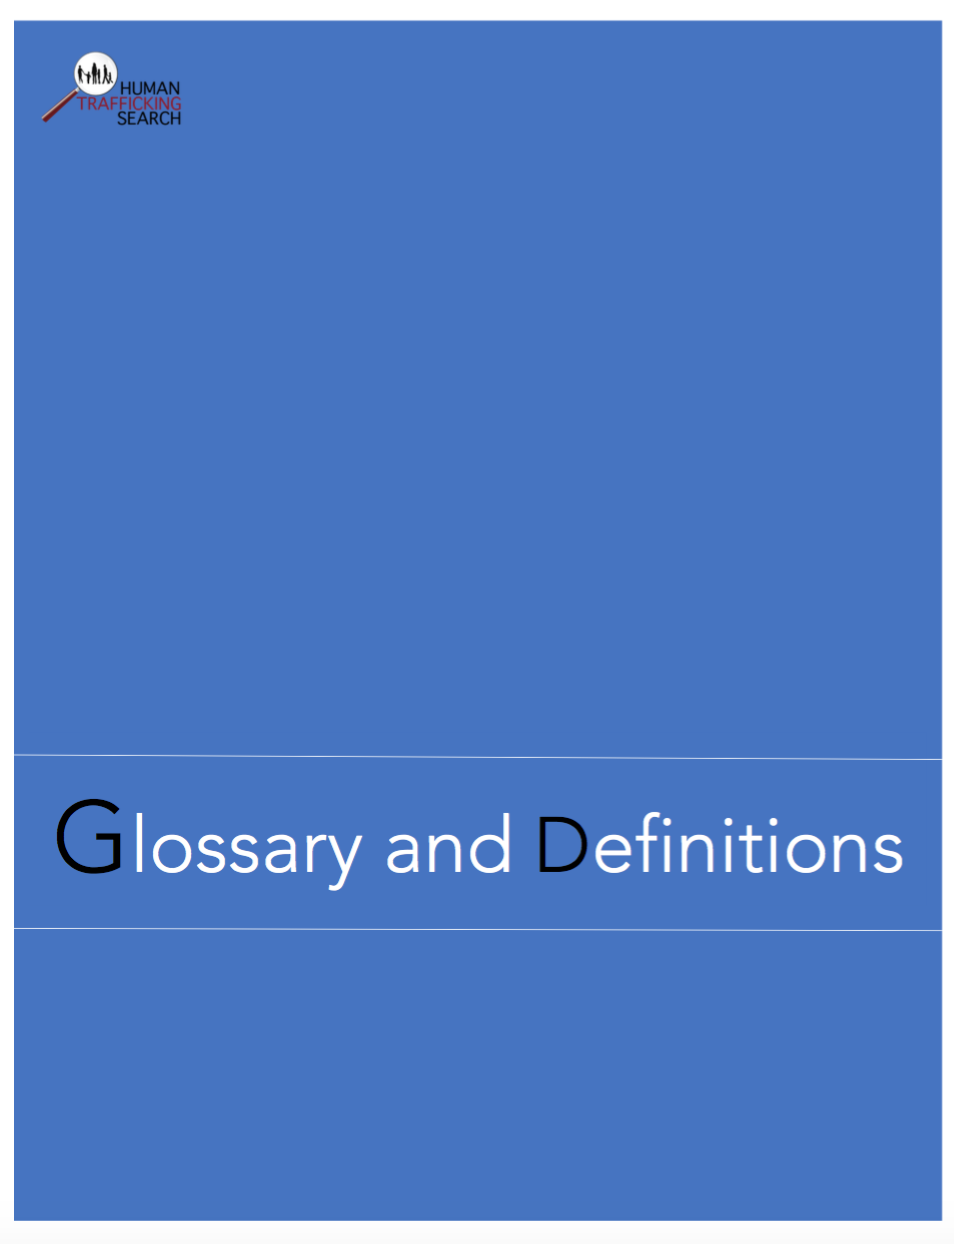 Glossary and Definitions